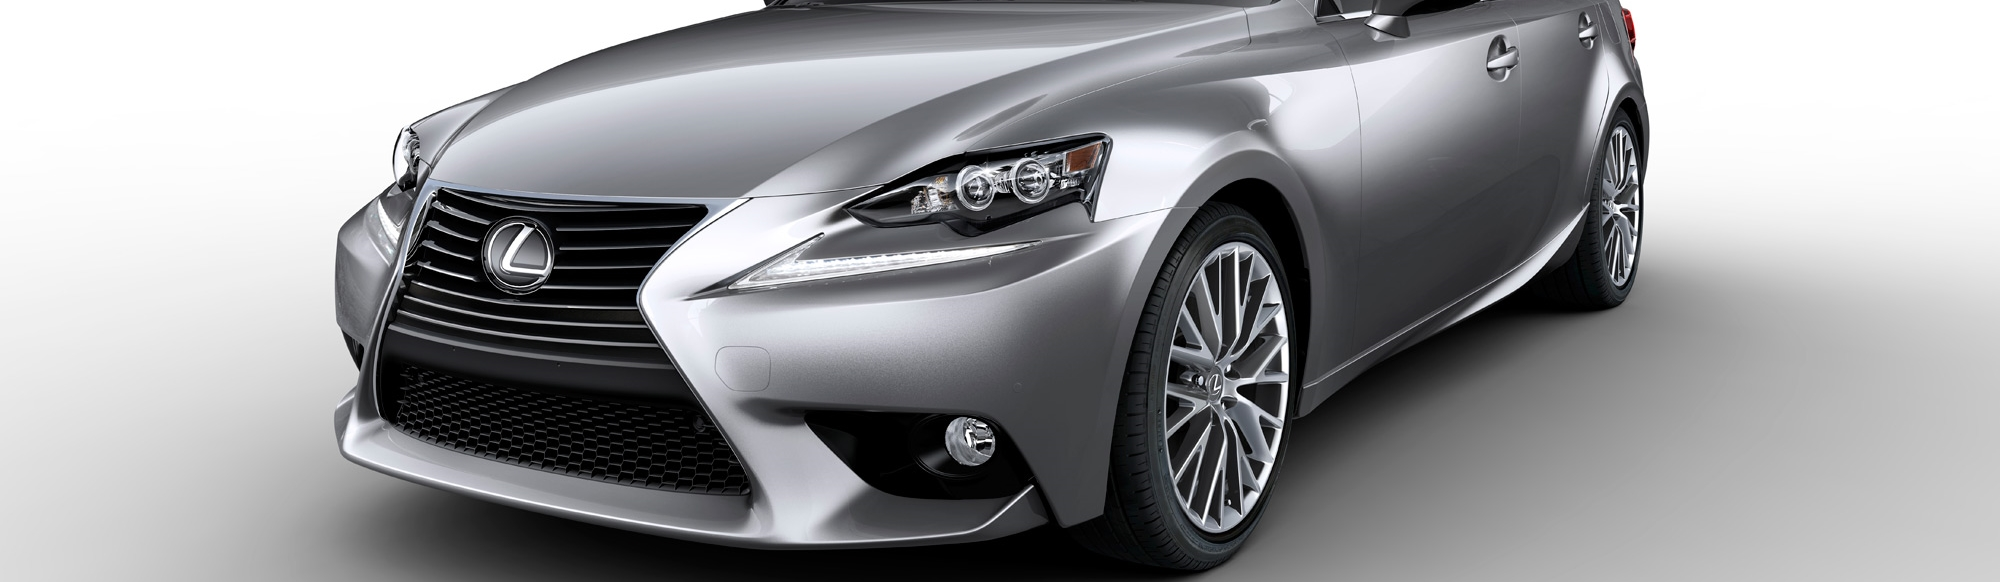 2014-Lexus-IS-350